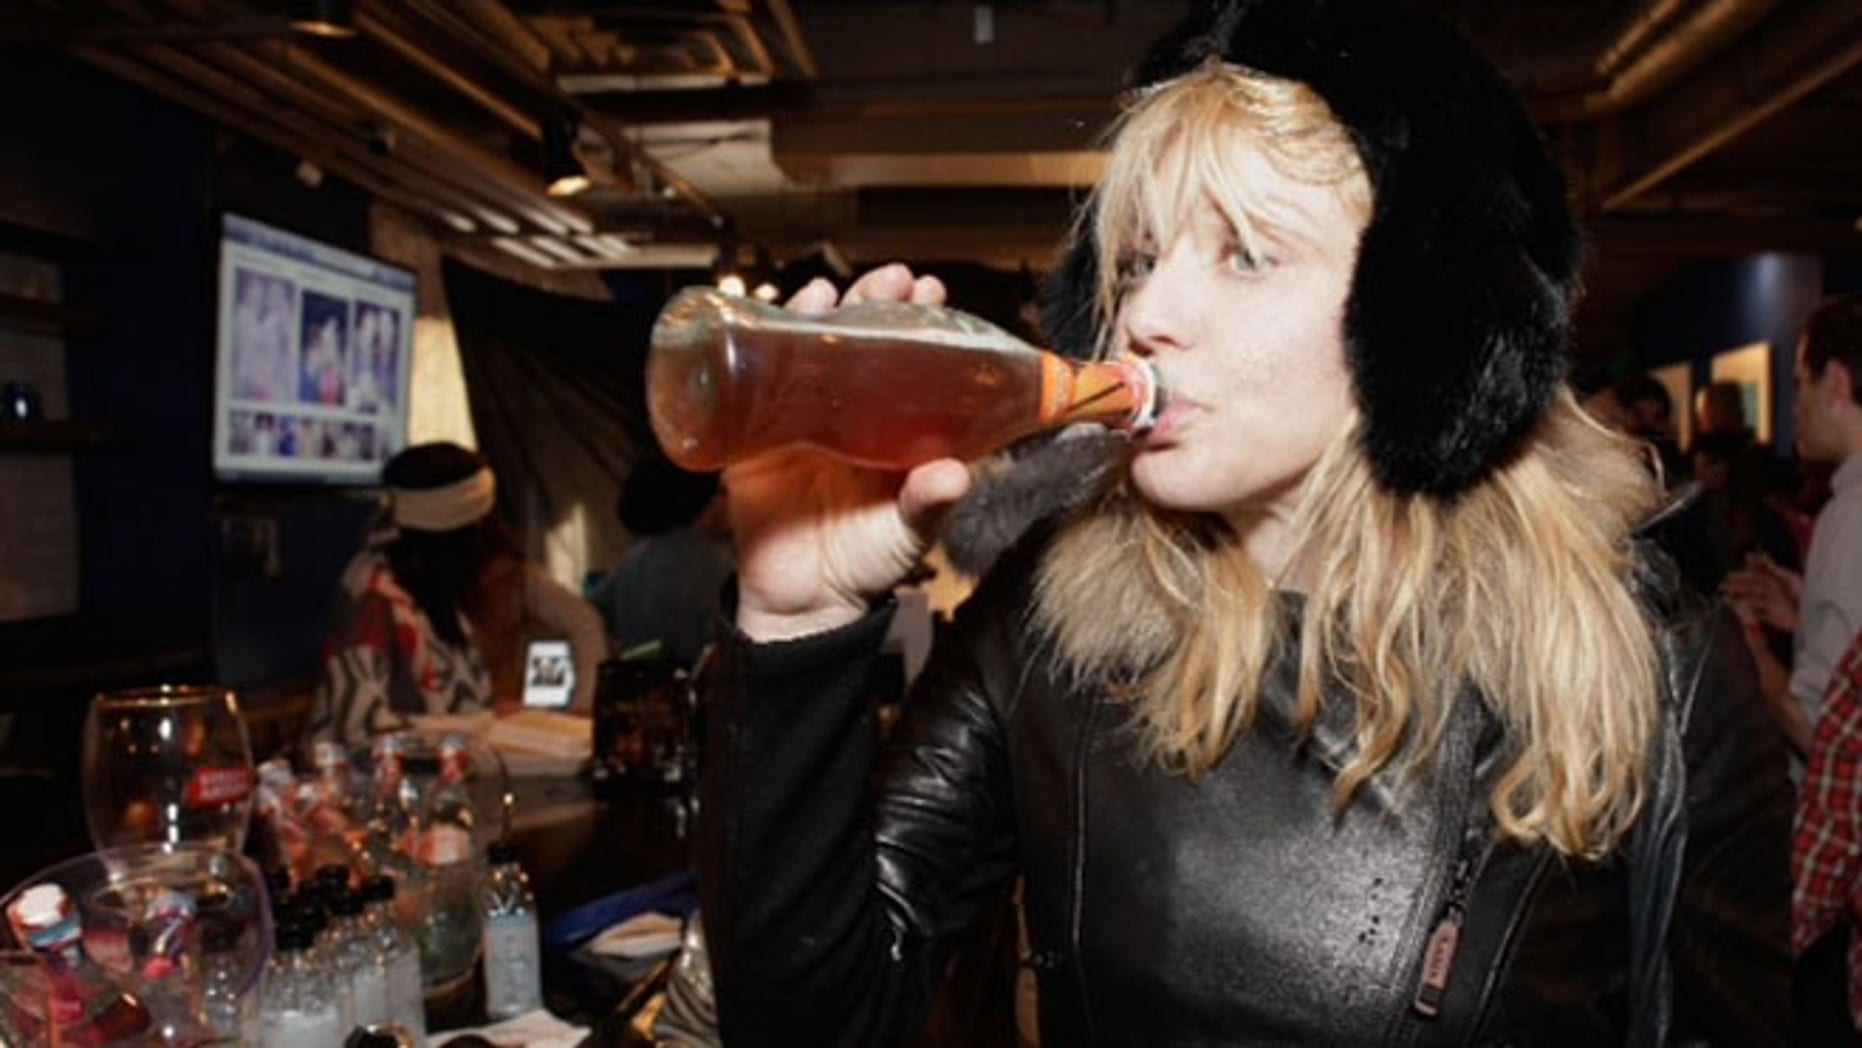 PARK CITY, UT - JANUARY 20:  Musician Courtney Love attends Day 3 of Tea of a Kind at Village At The Lift 2013 on January 20, 2013 in Park City, Utah.  (Photo by Tiffany Rose/Getty Images for Tea Of A Kind)